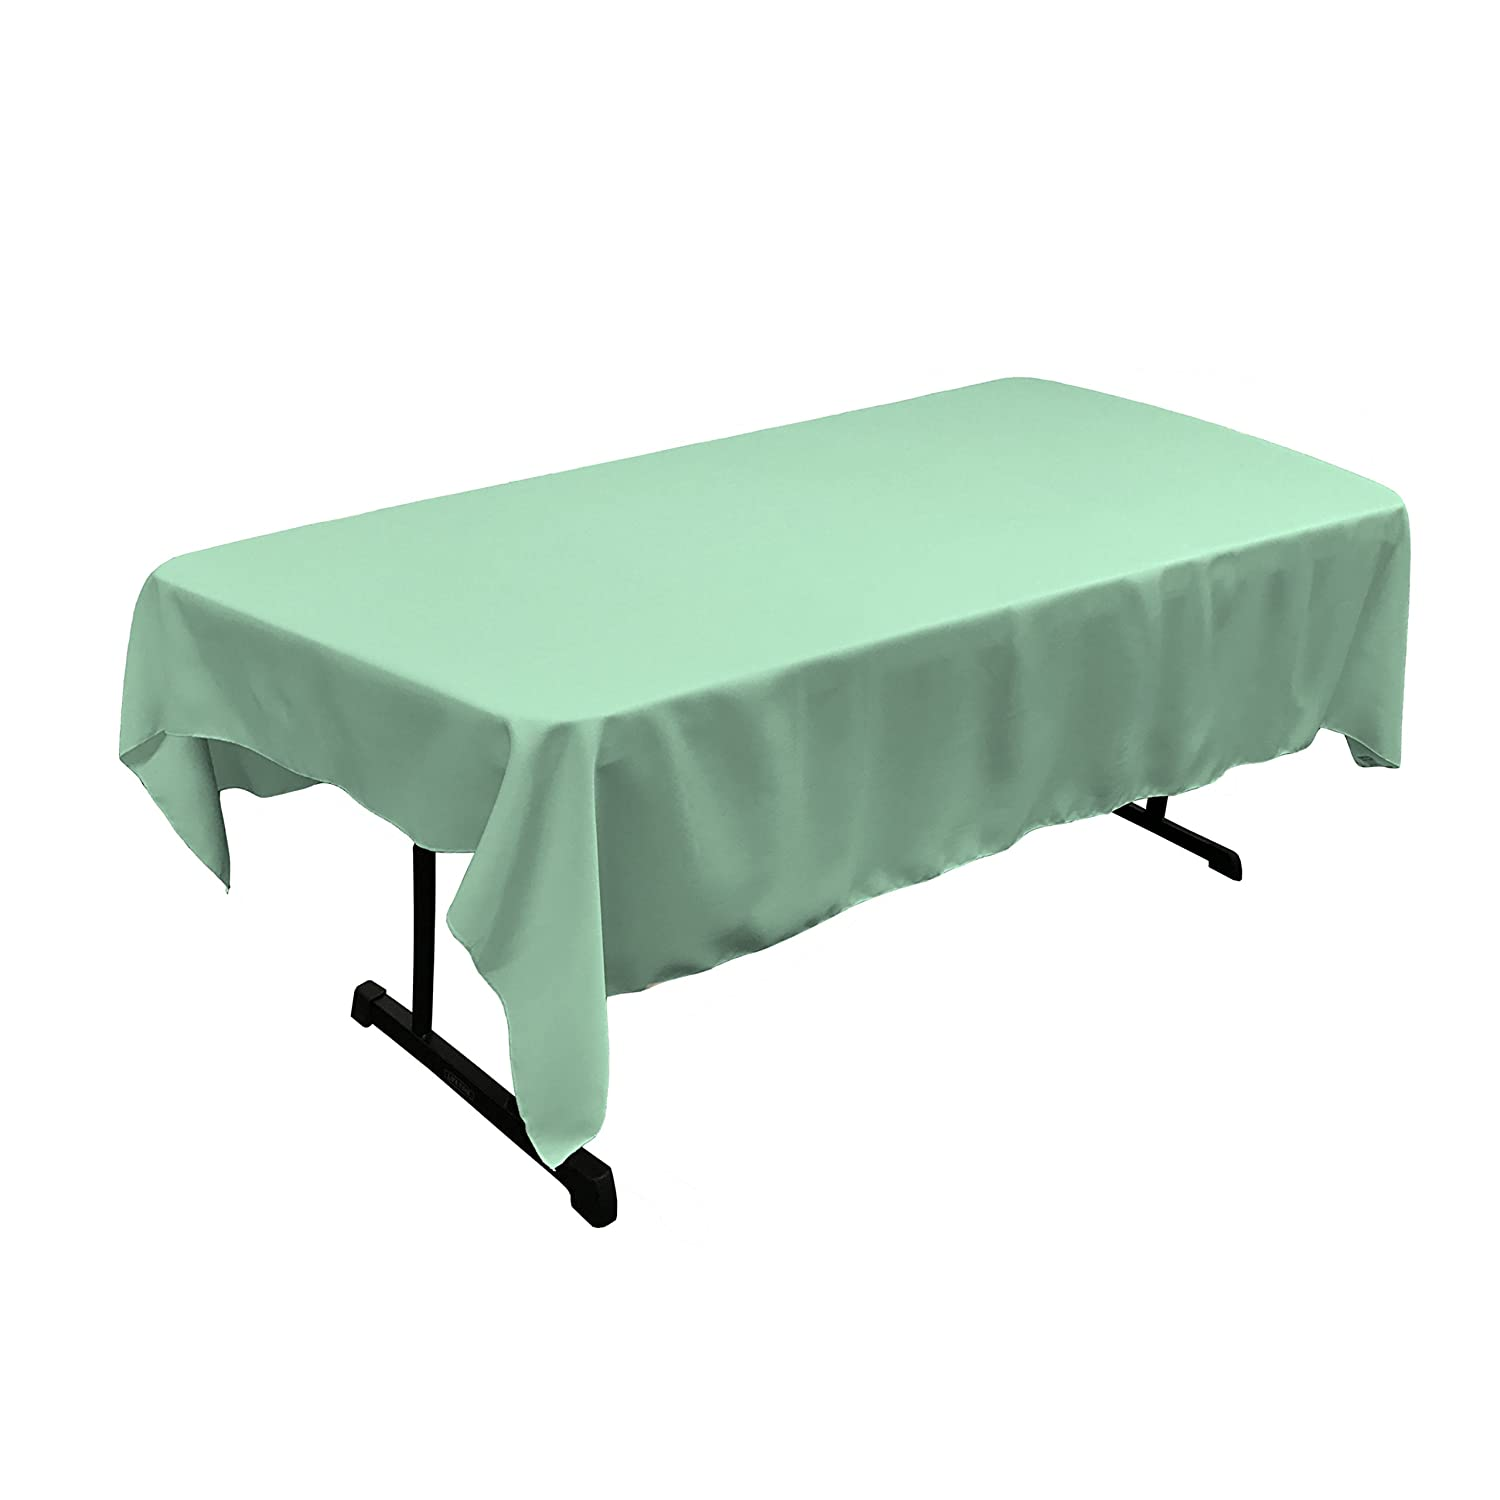 LA Linen Polyester Poplin Rectangular Tablecloth Light Turquoise 60 x 84